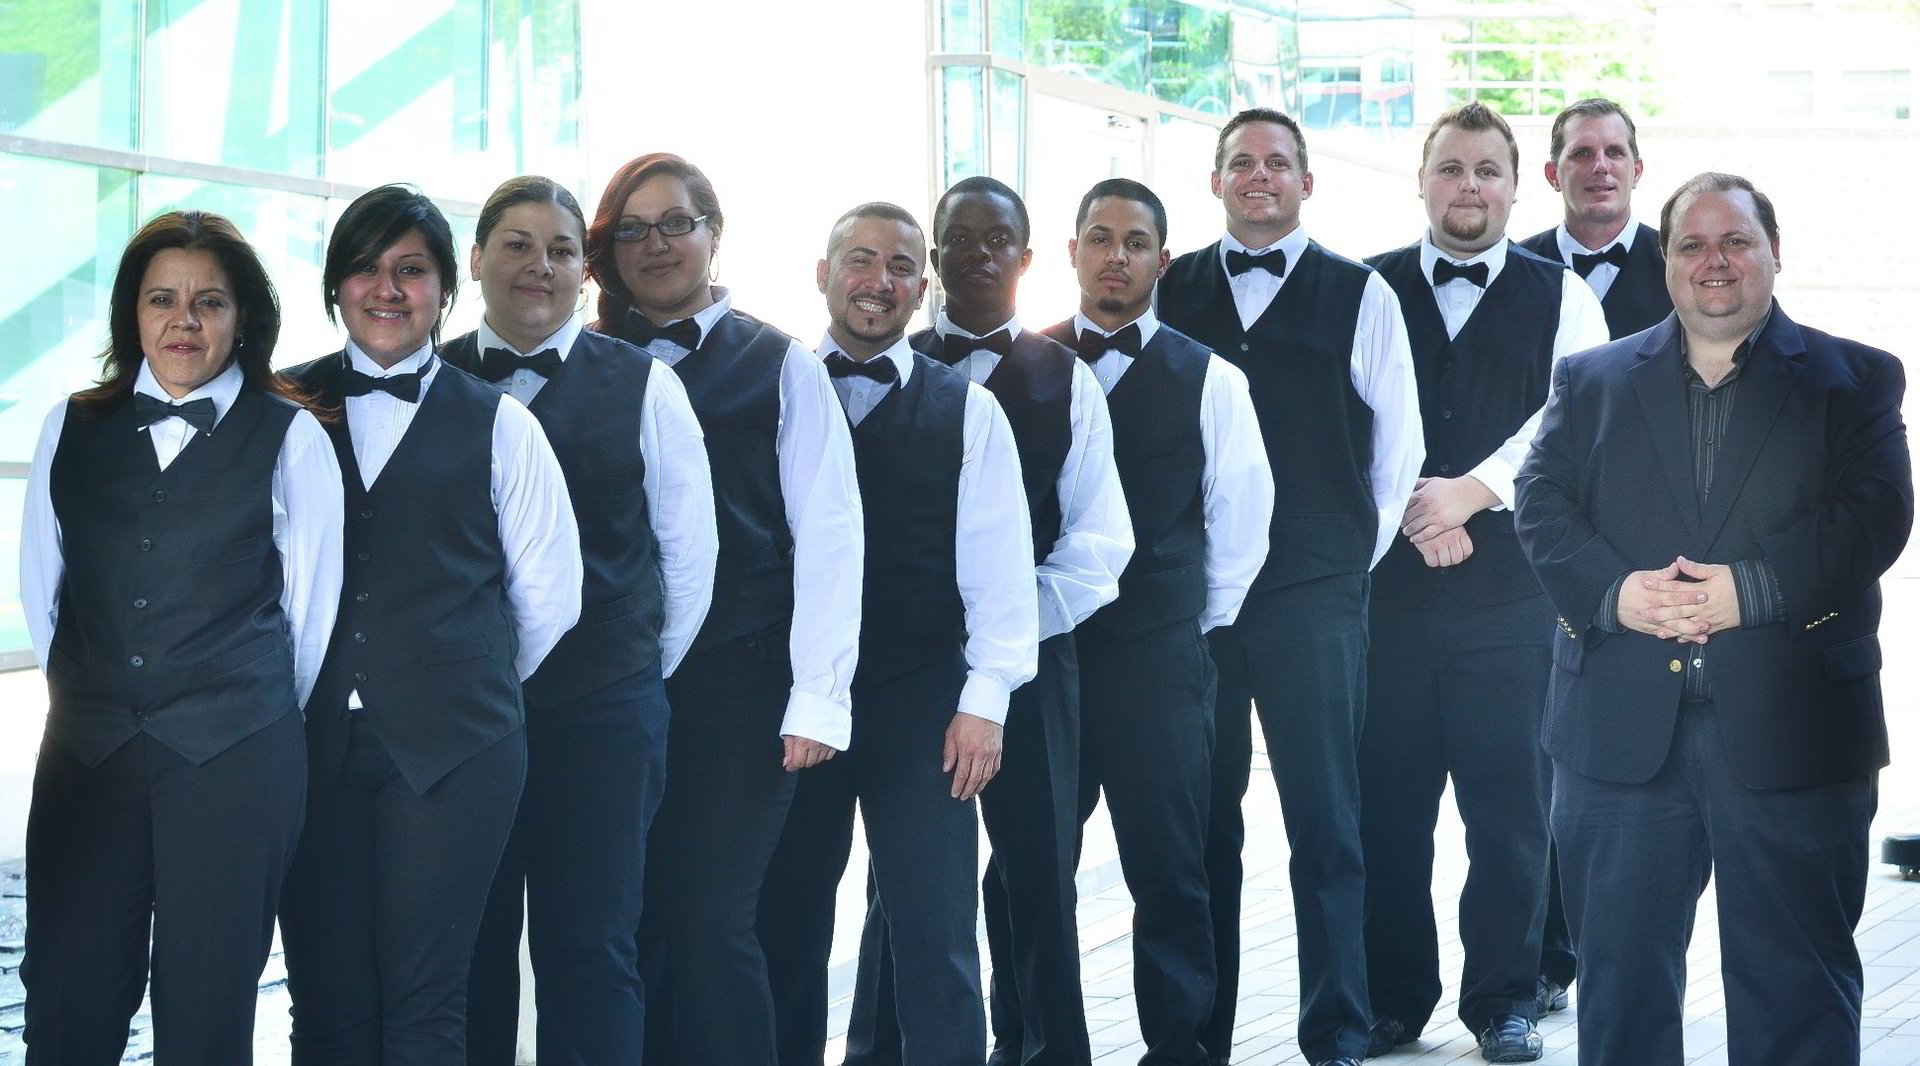 Catering Staffing in Fort Worth